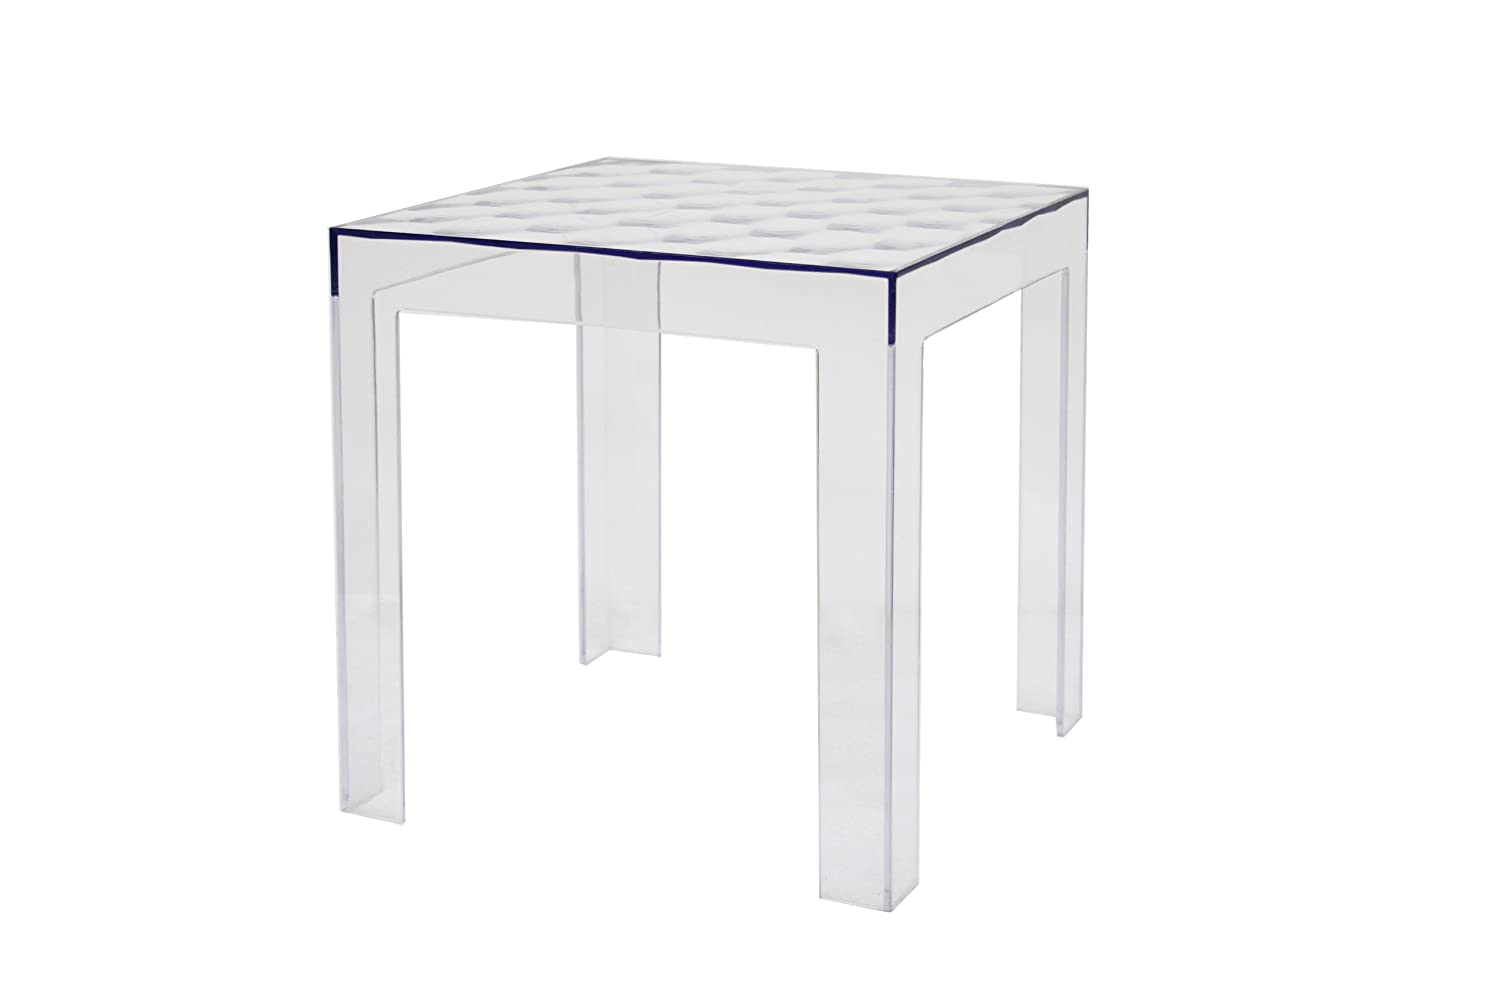 Ordinaire Amazon.com: Baxton Studio Parq Clear Acrylic Modern End Table: Kitchen U0026  Dining